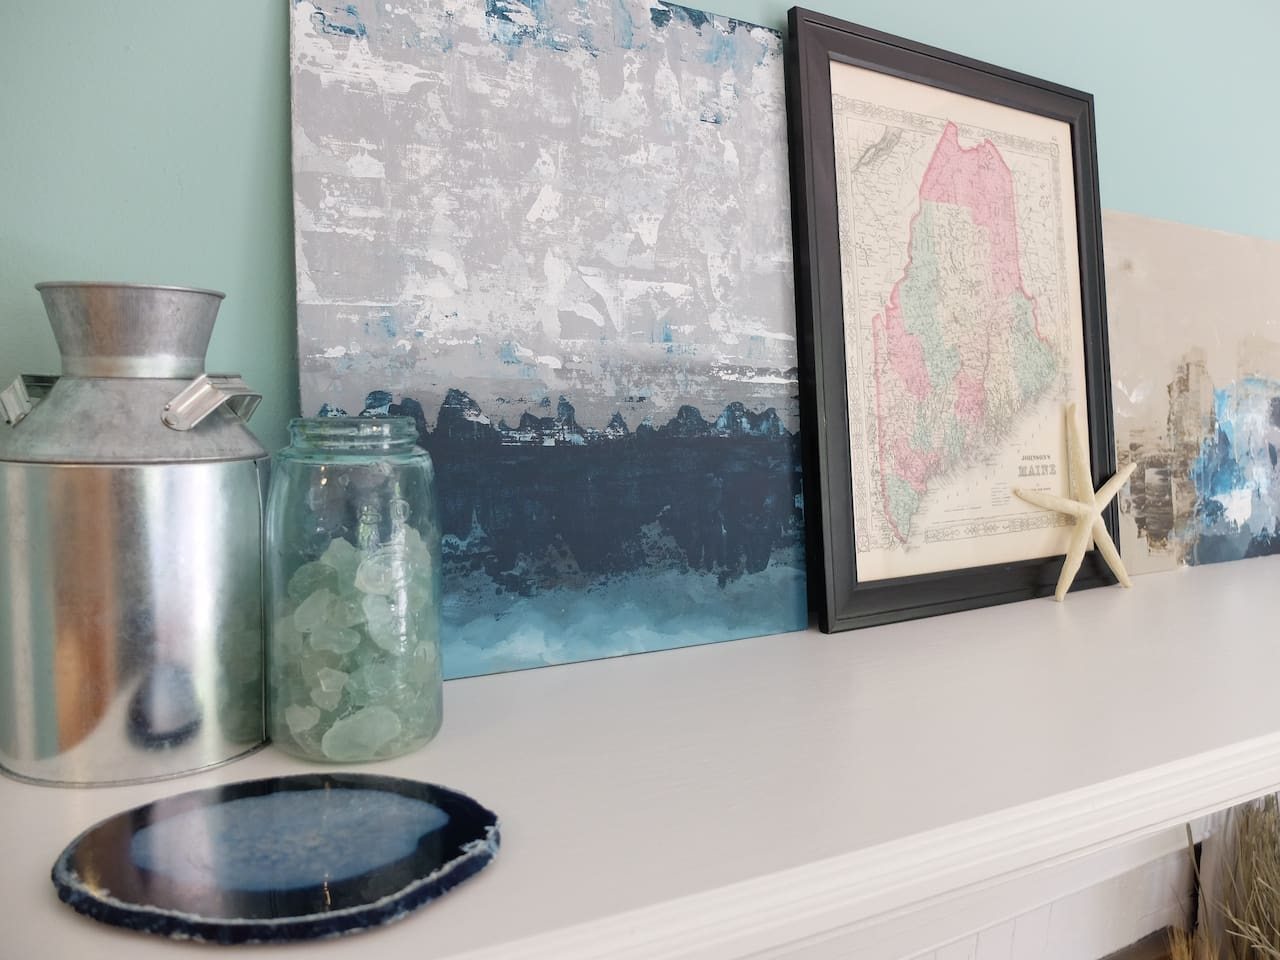 Just some of the nautical, coastal Maine details.